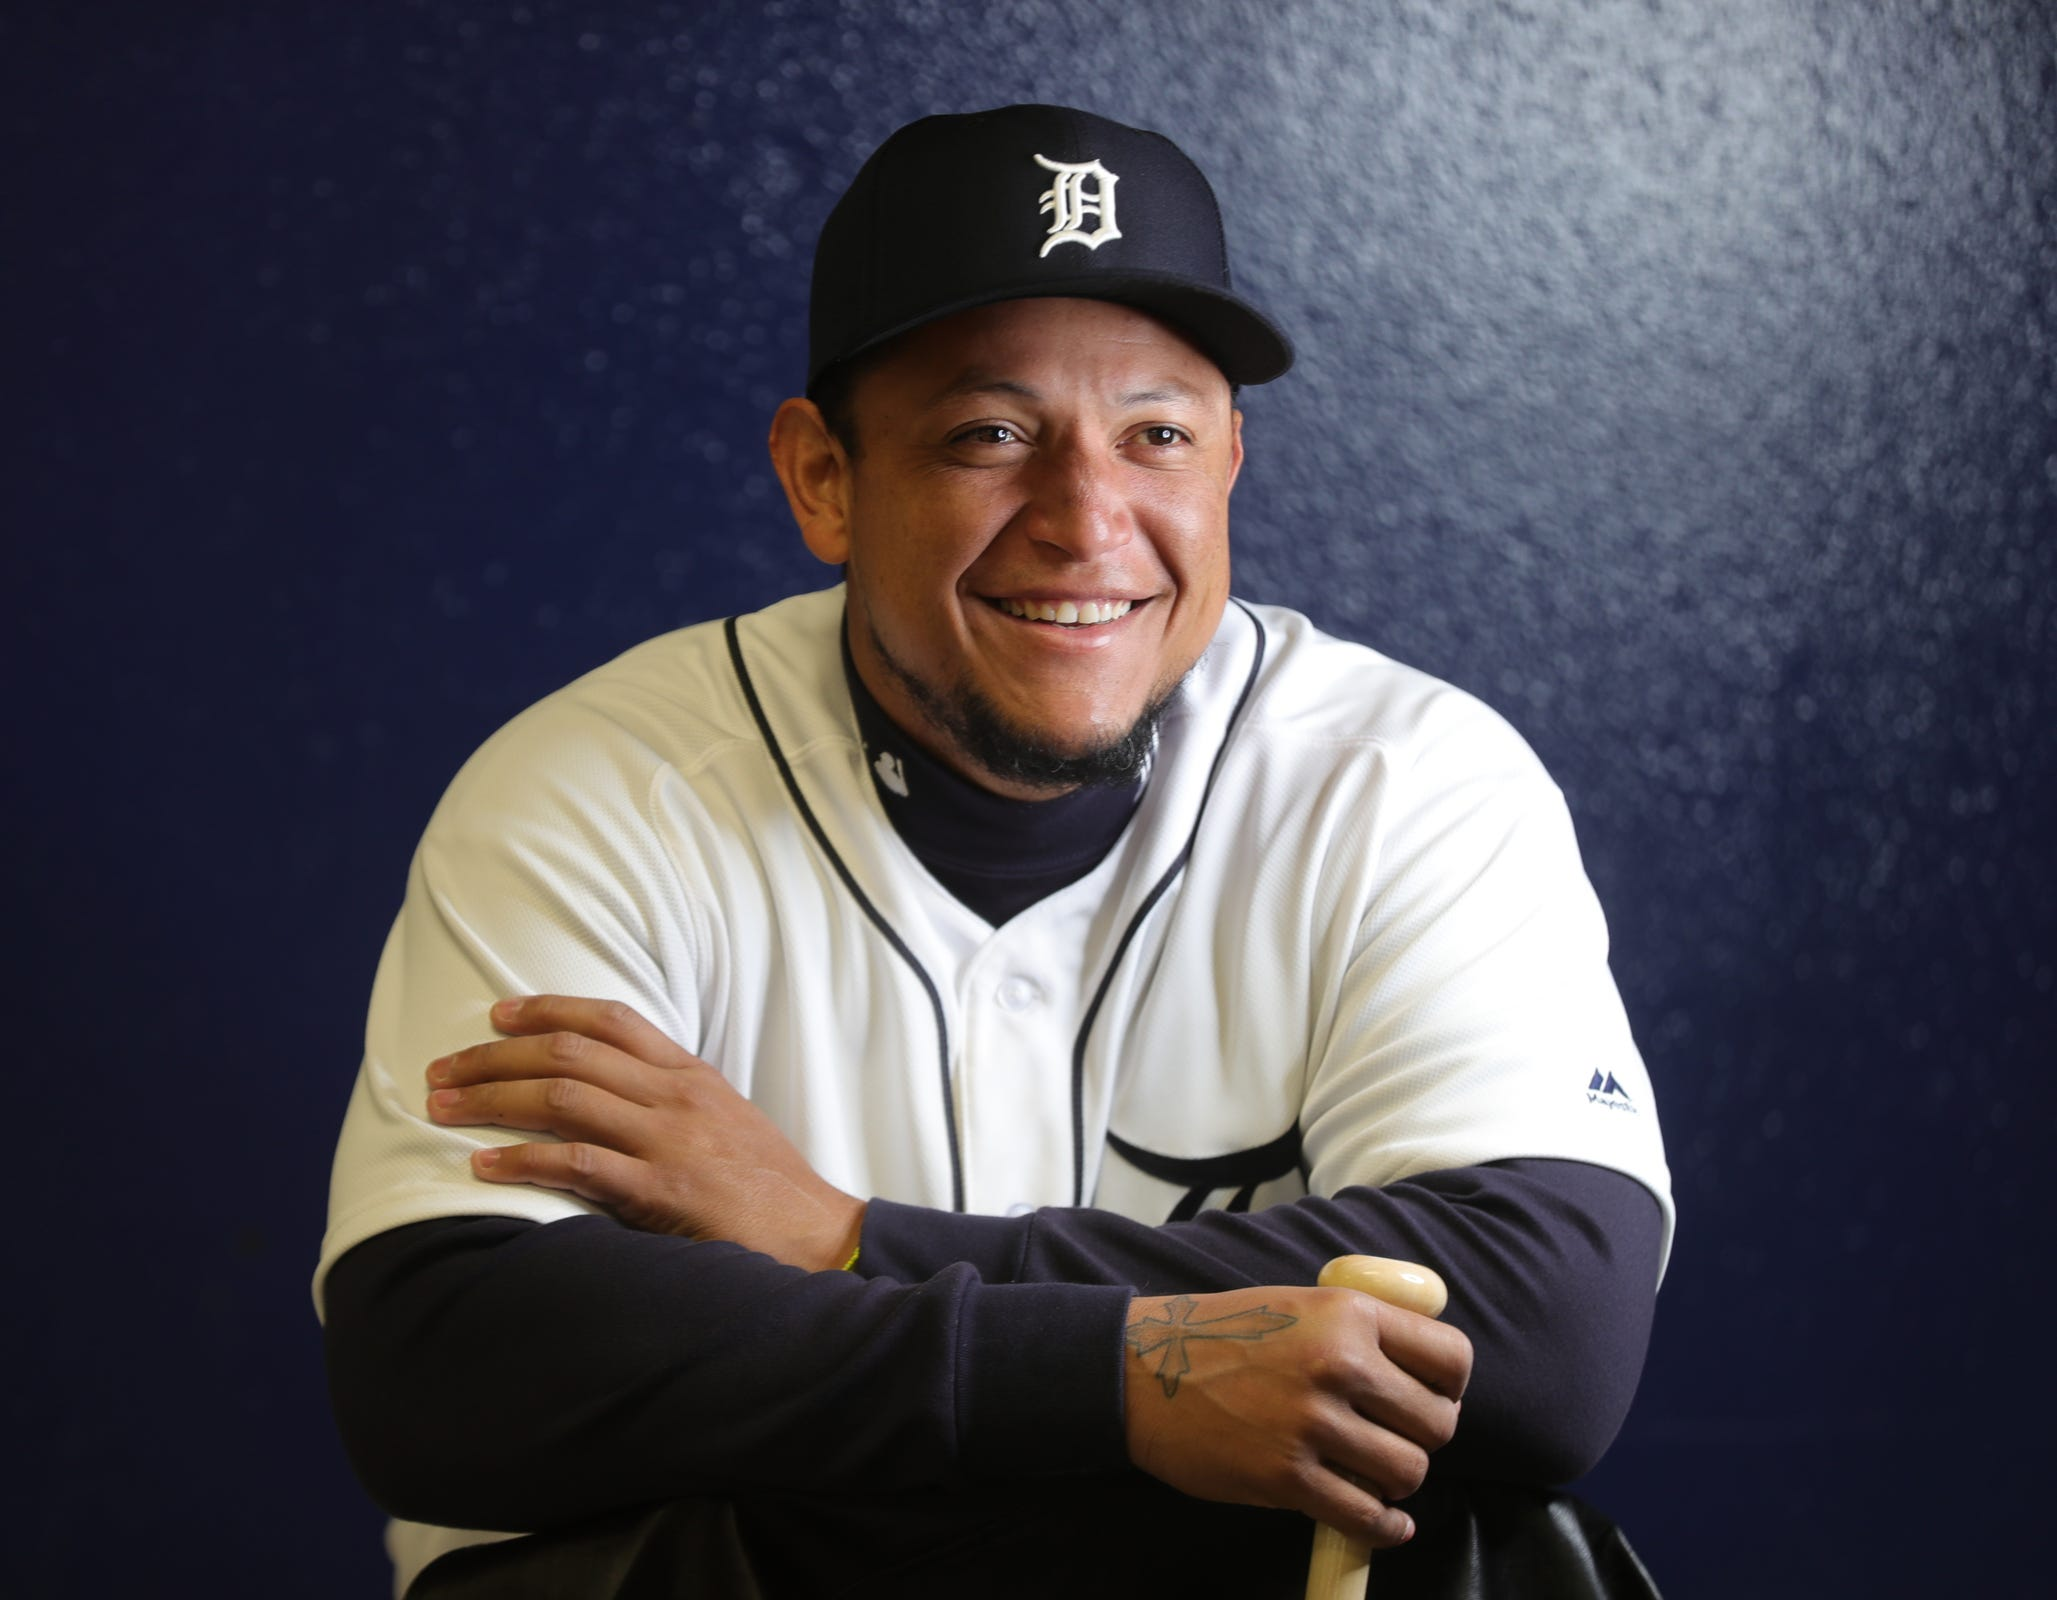 Tigers first baseman Miguel Cabrera has his picture taken during spring training on Tuesday, Feb. 19, 2019, at Joker Marchant Stadium in Lakeland, Florida.